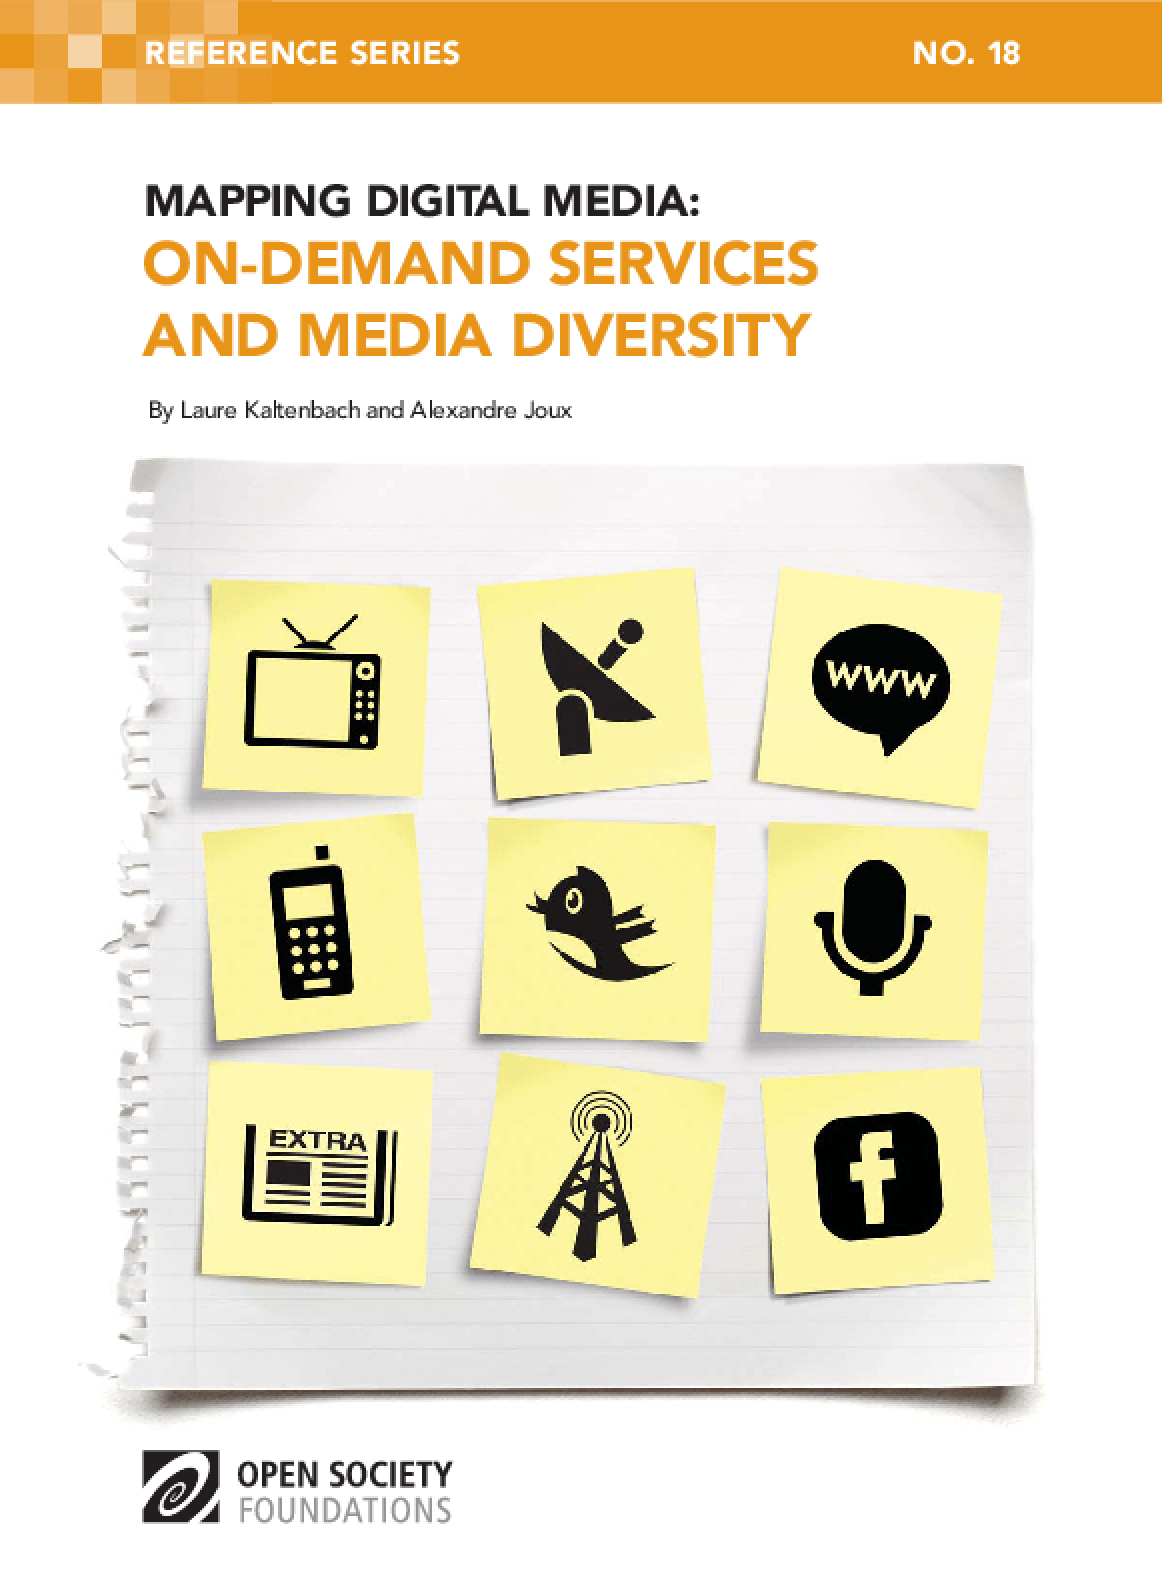 Mapping Digital Media: On-Demand Services and Media Diversity